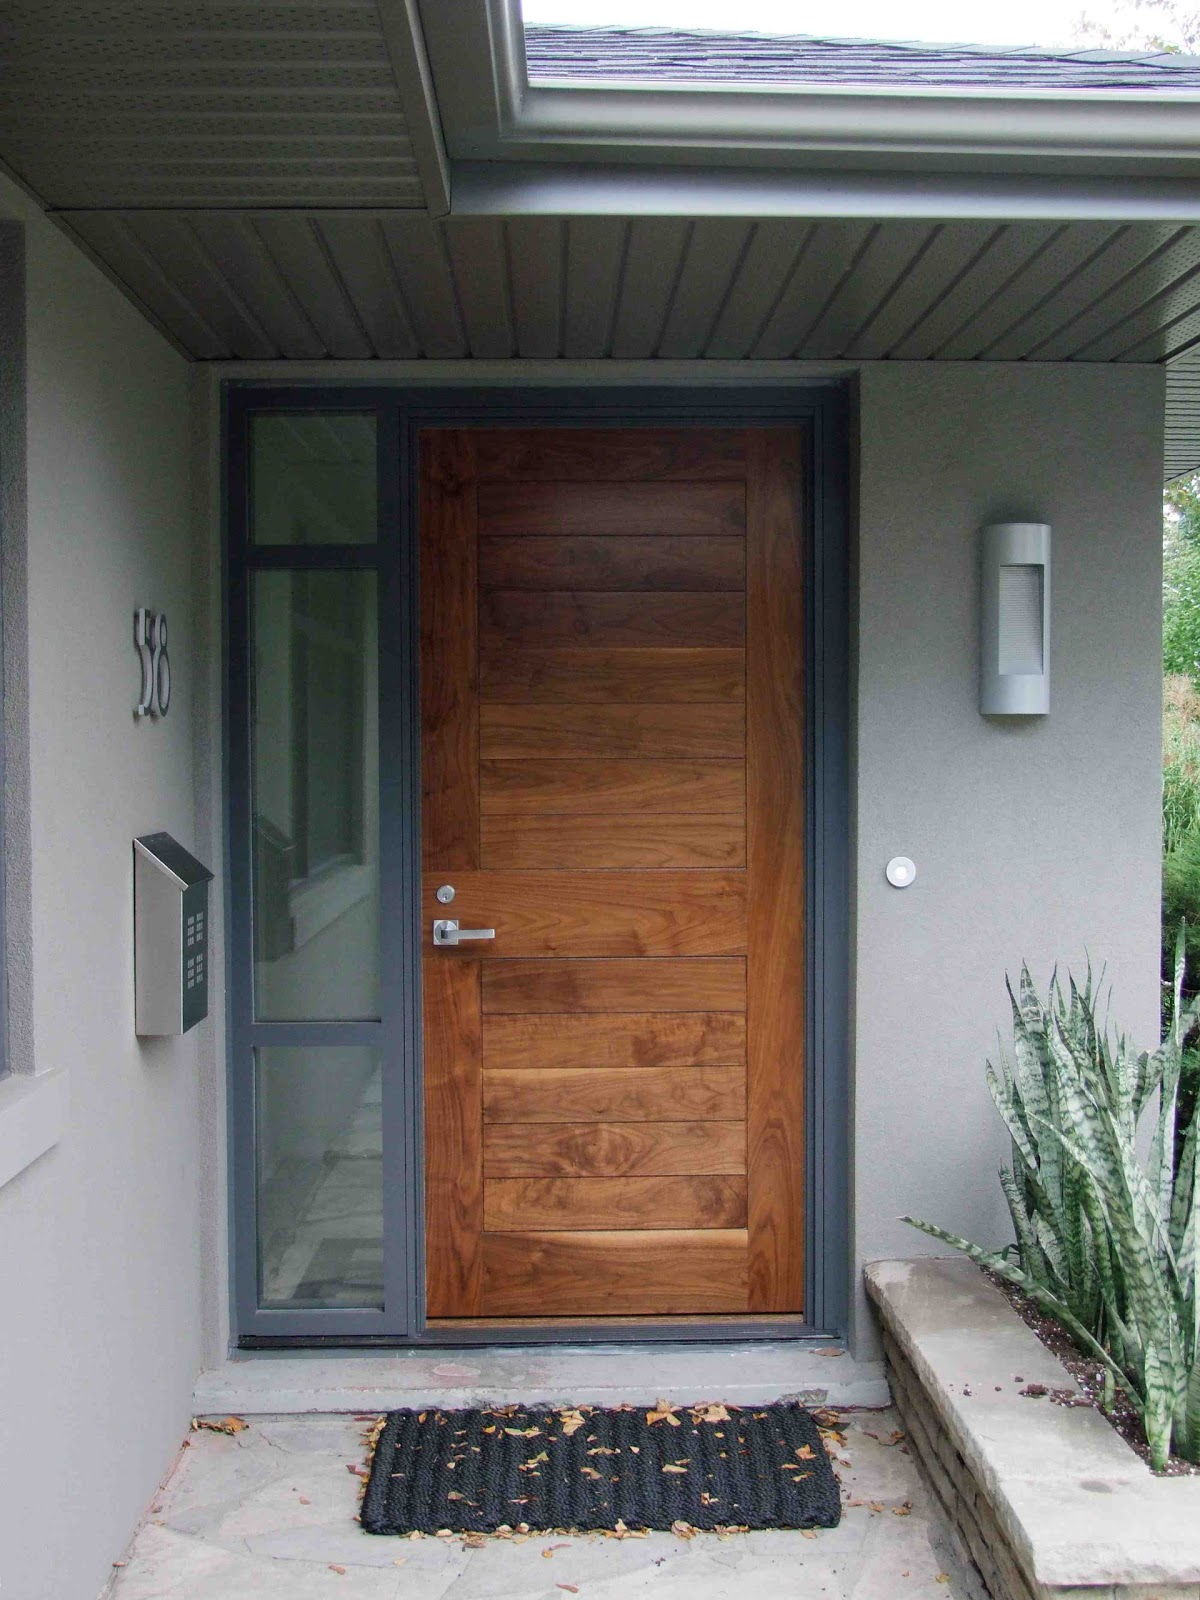 Creed 70 39 s bungalow makes a modern impression for Wood and glass front entry doors